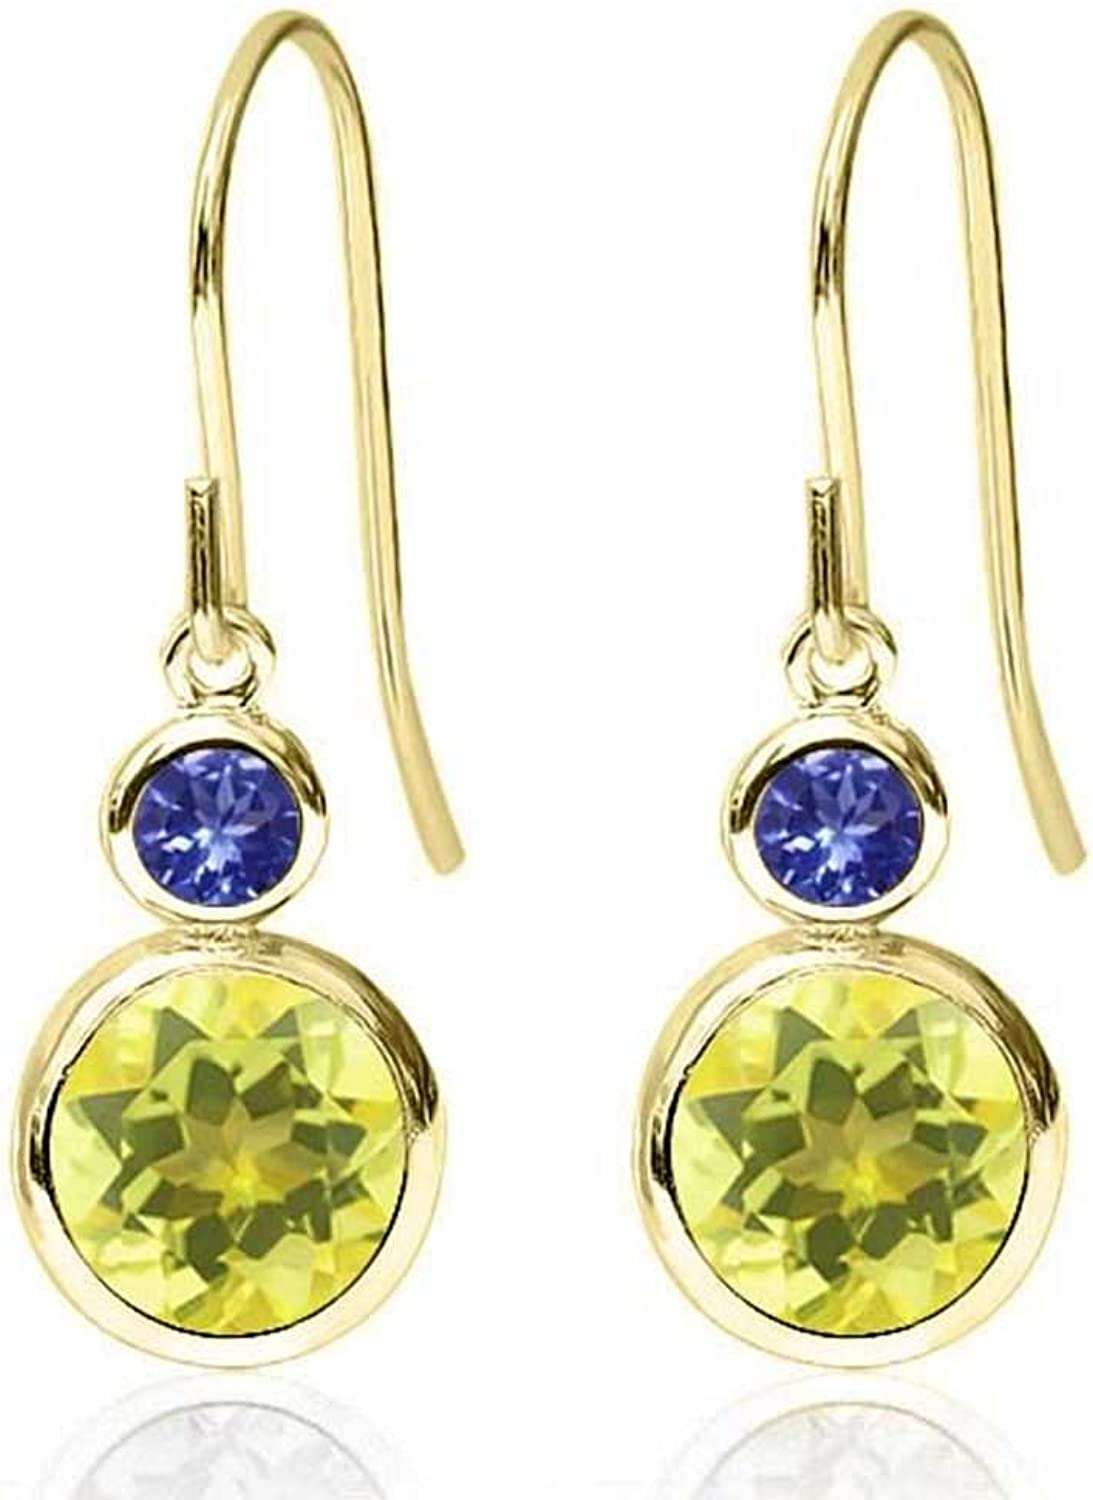 2.24 Ct Round Canary Mystic Topaz bluee Tanzanite 14K Yellow gold Earrings